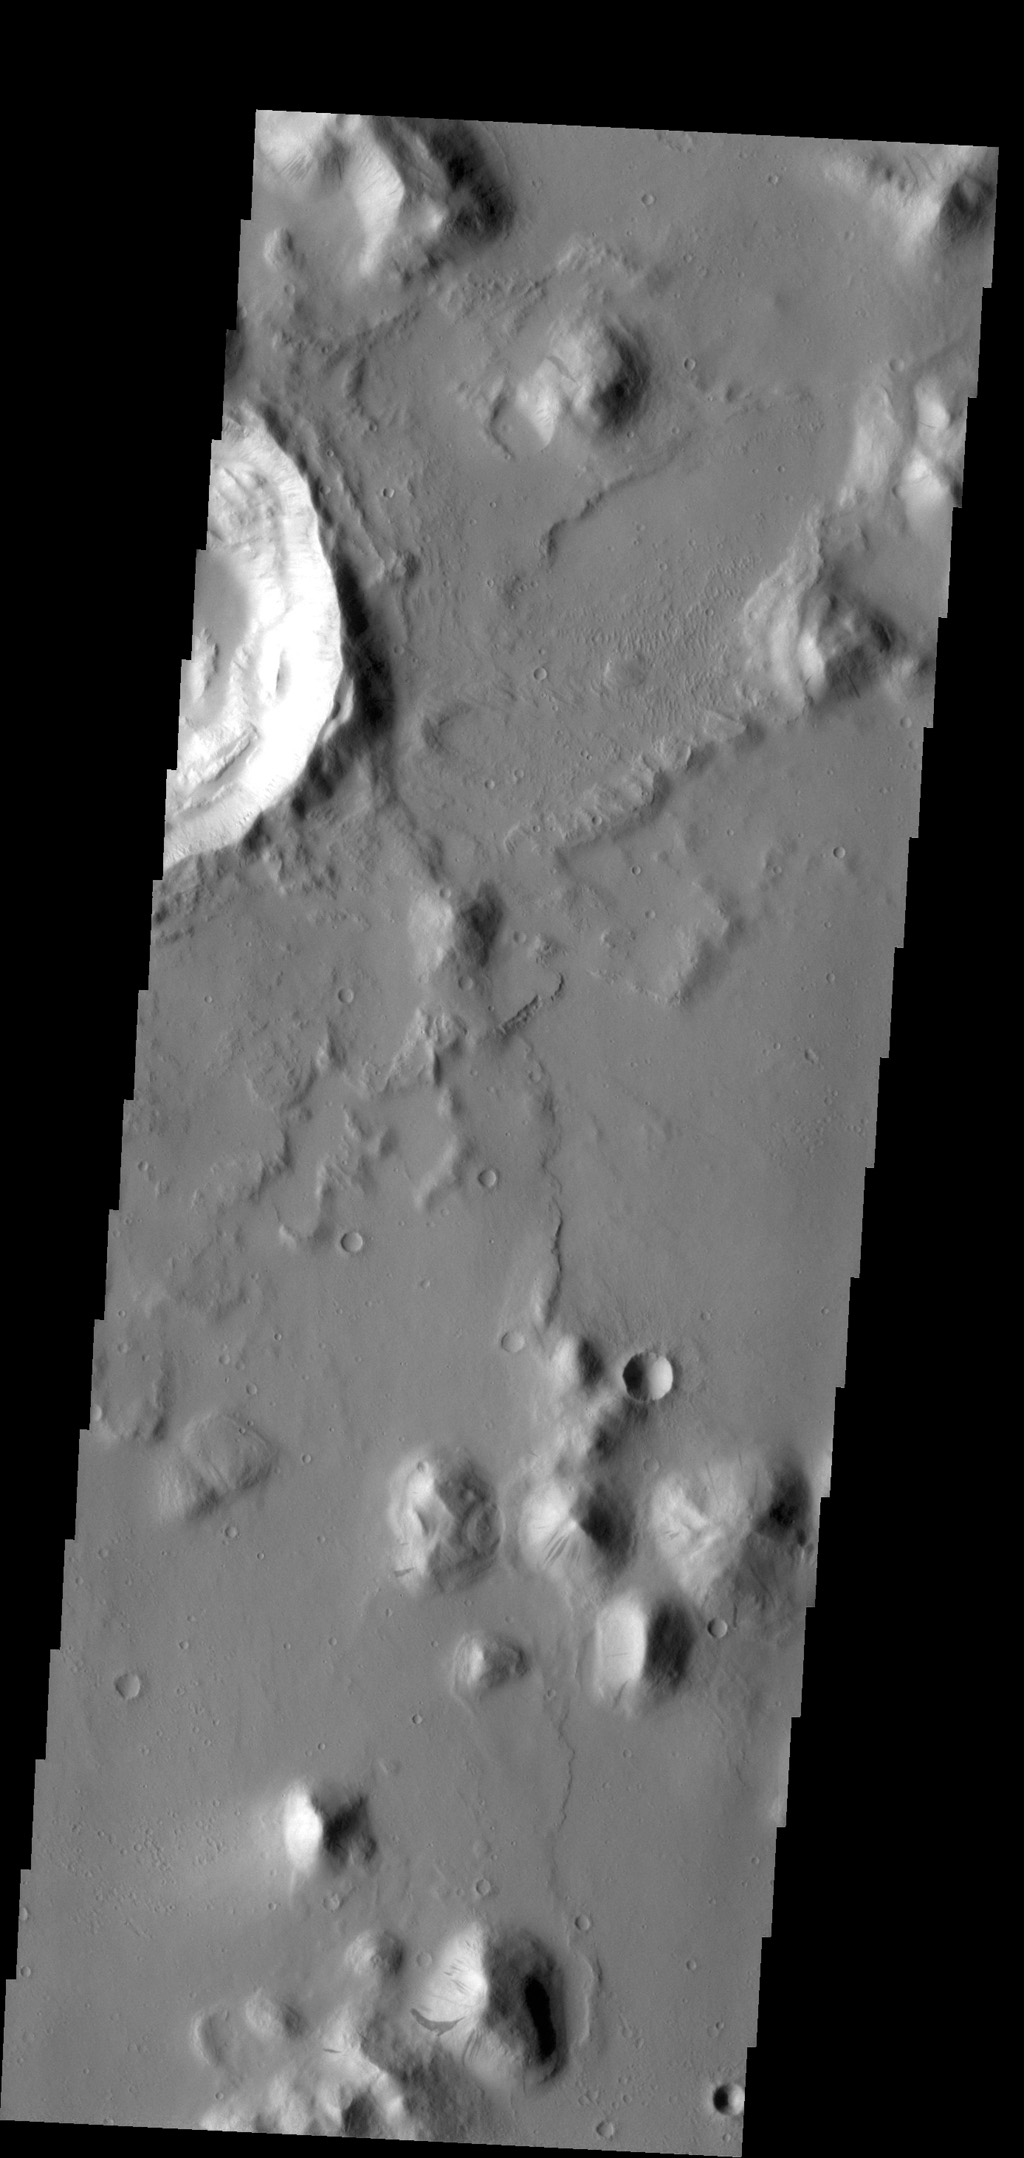 The small hill in this image aptured by NASA's 2001 Mars Odyssey spacecraft of Amazonis Planitia has several dark slope streaks, believed to form when down slope movement of rocks or other debris clear off some of the dust cover.